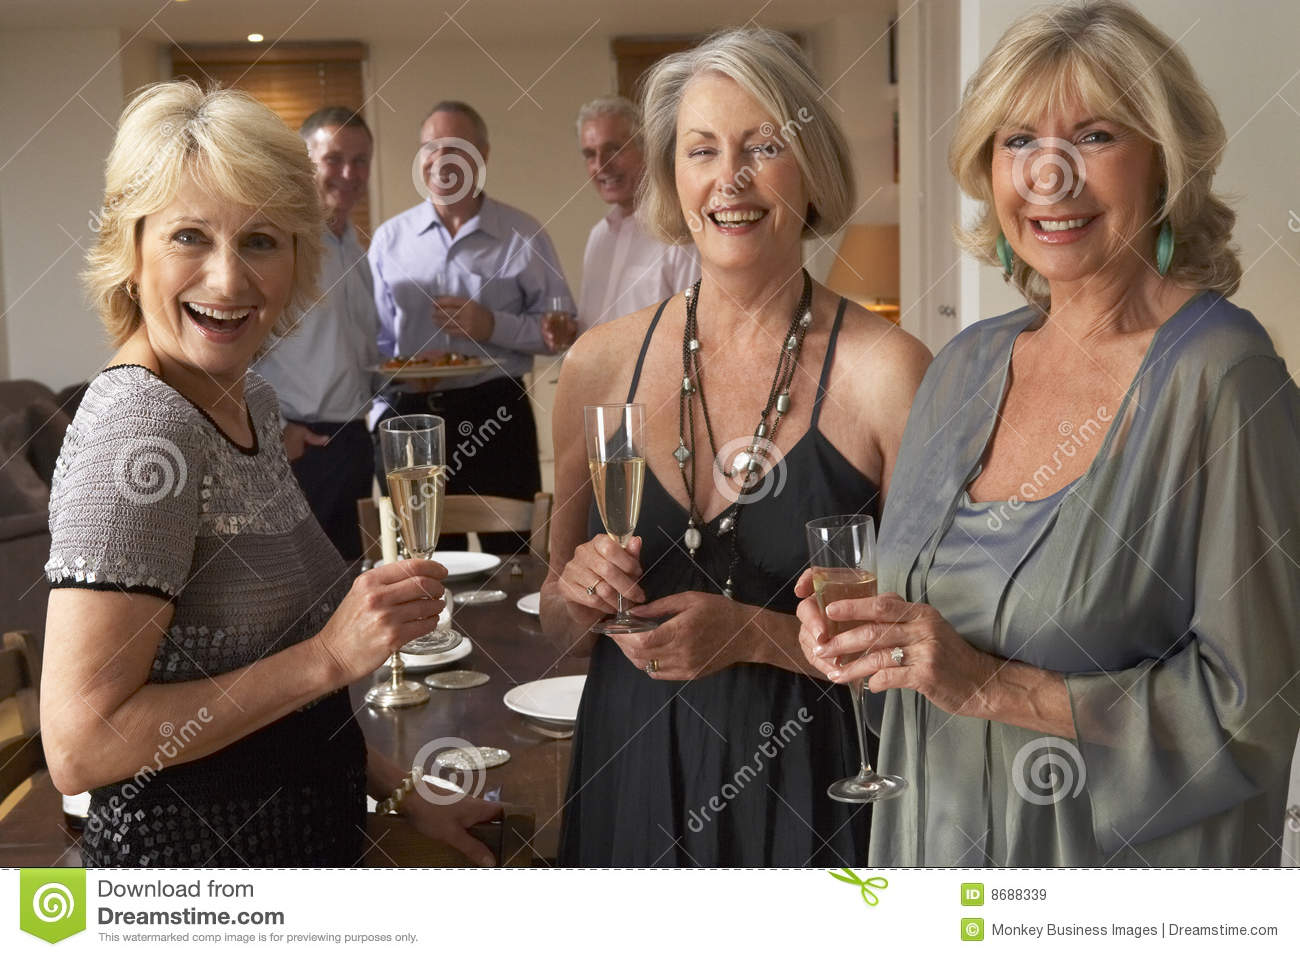 Women Enjoying Champagne At A Dinner Party Royalty Free